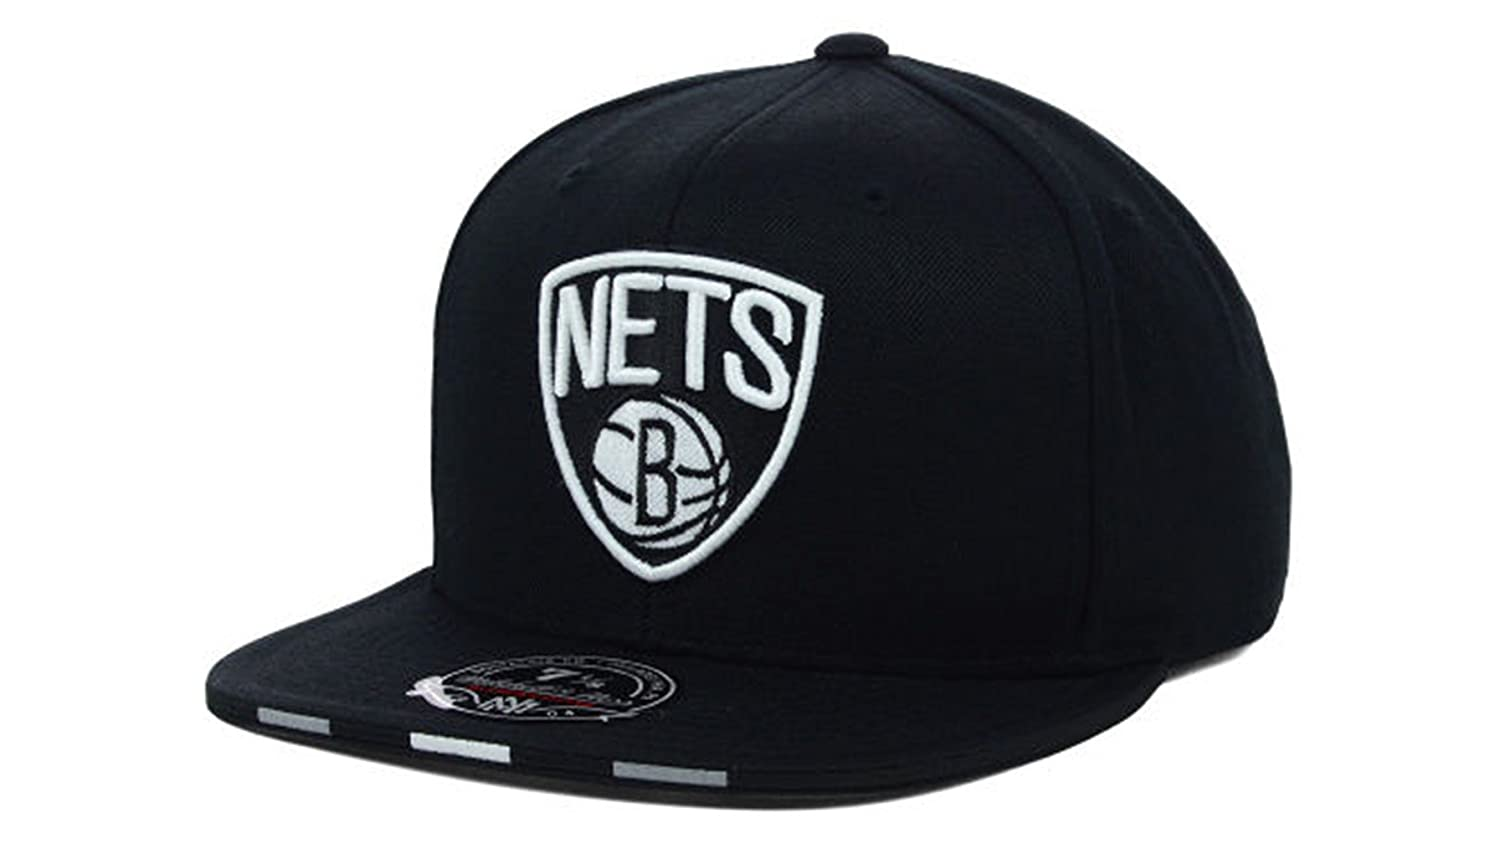 7c955594d37e4 Amazon.com   Brooklyn Nets Men s Mitchell   Ness NBA Basketball Super  Stripe Fitted Hat Cap - Black   Clothing